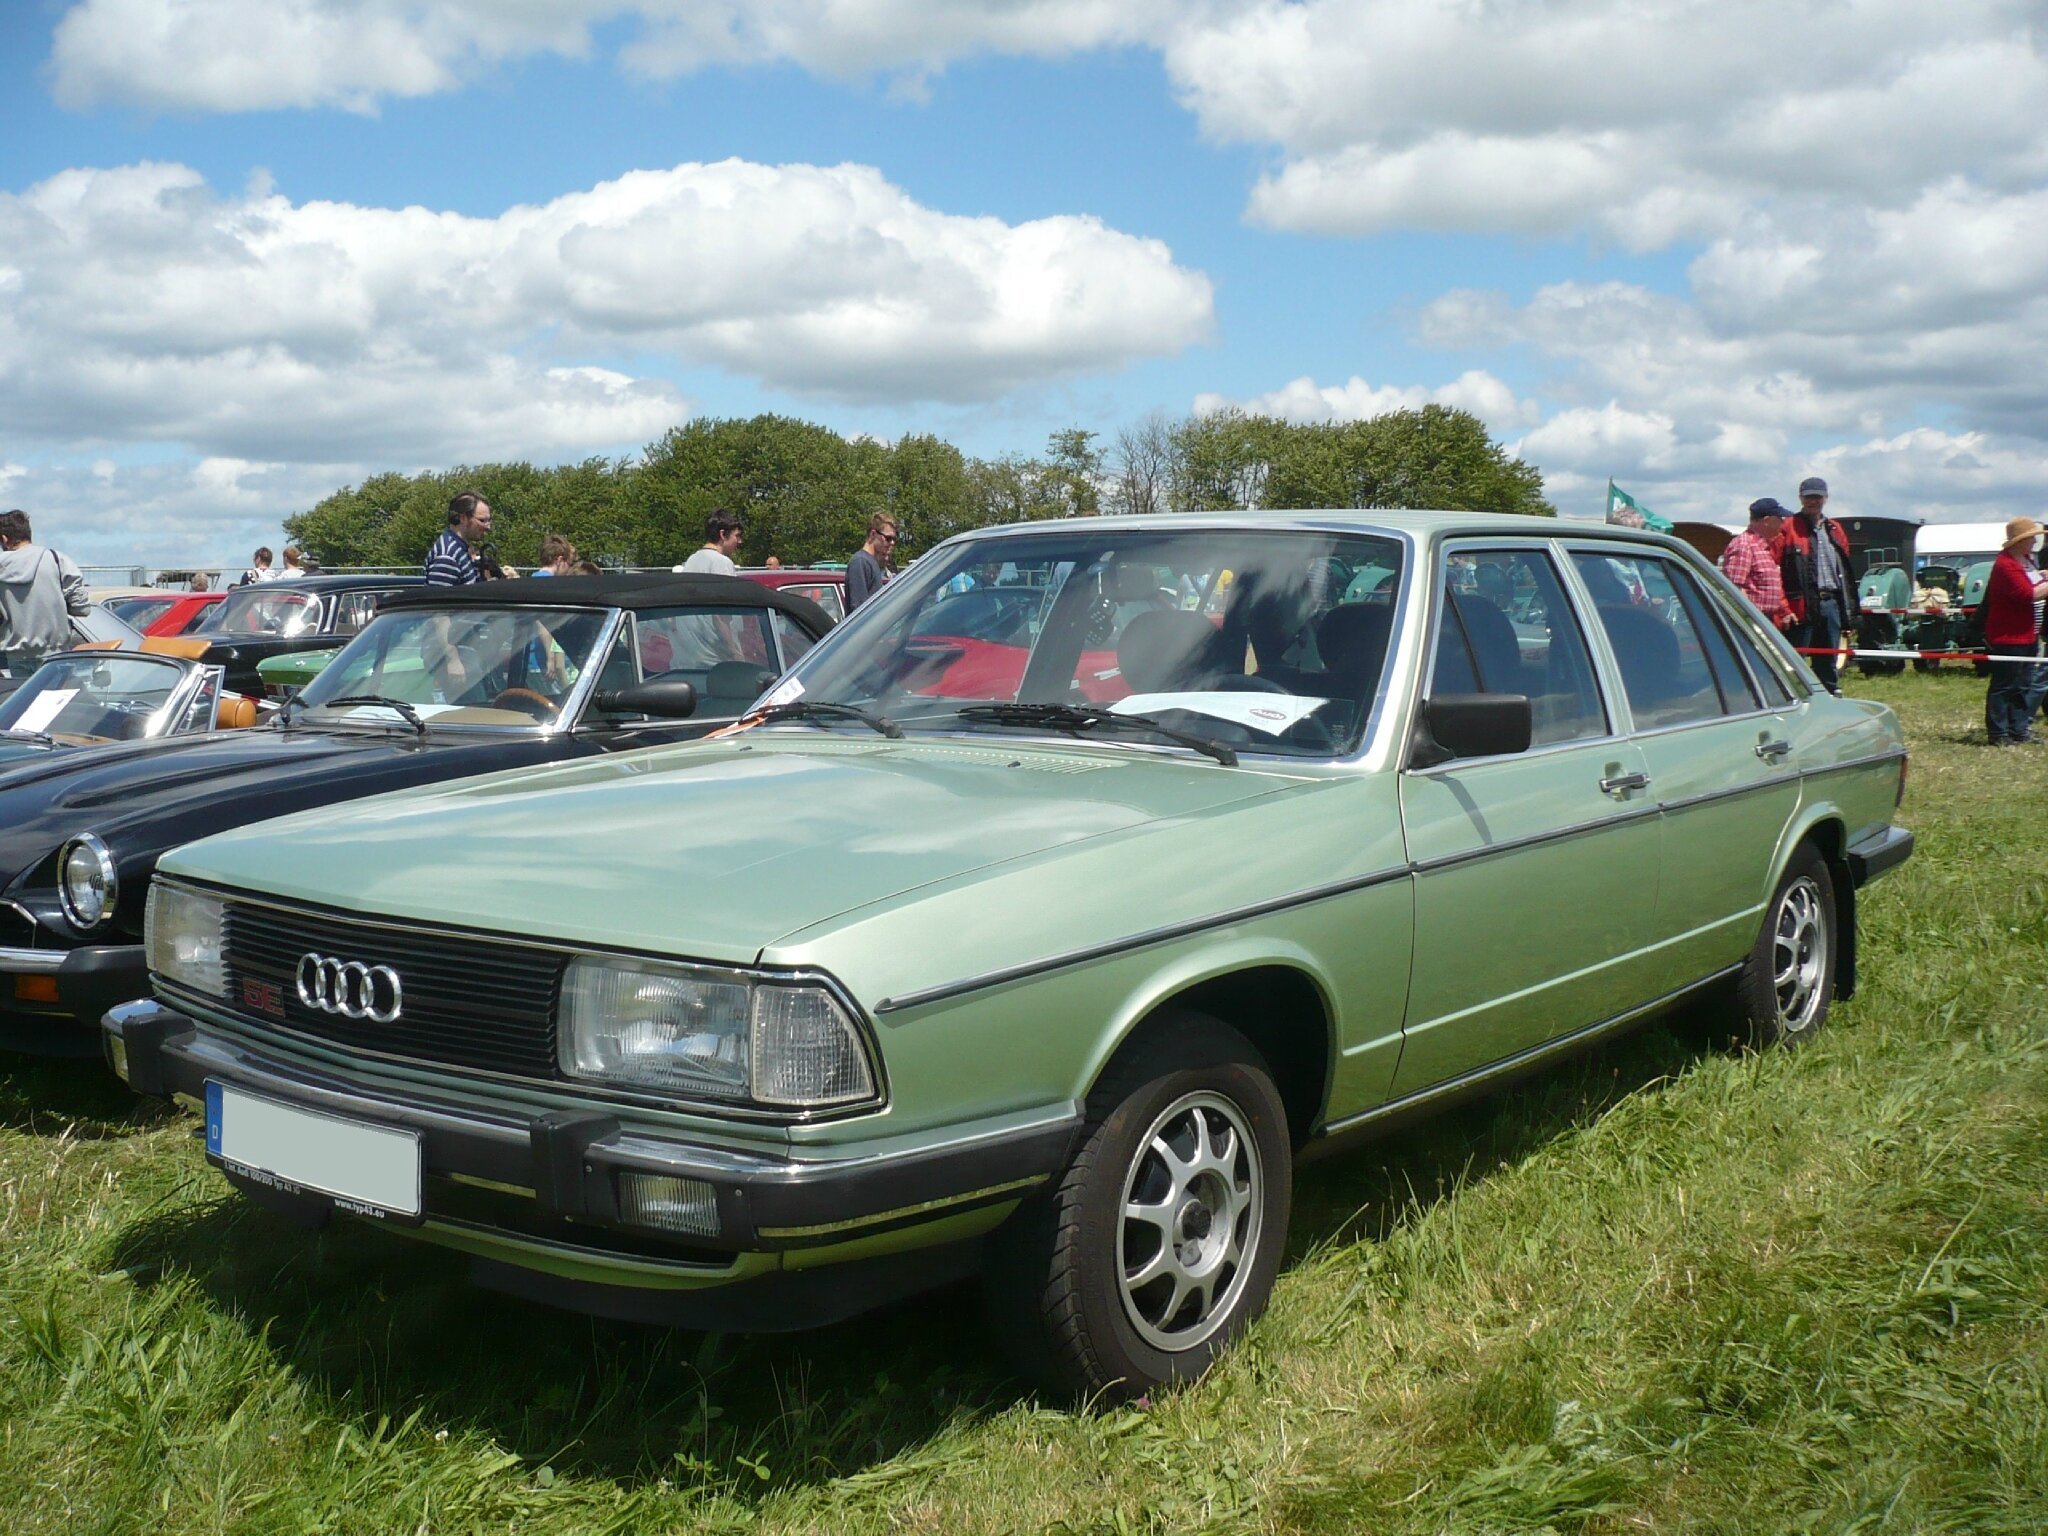 AUDI 100 CD 5E berline 4 portes 1979 Eutingen (1)